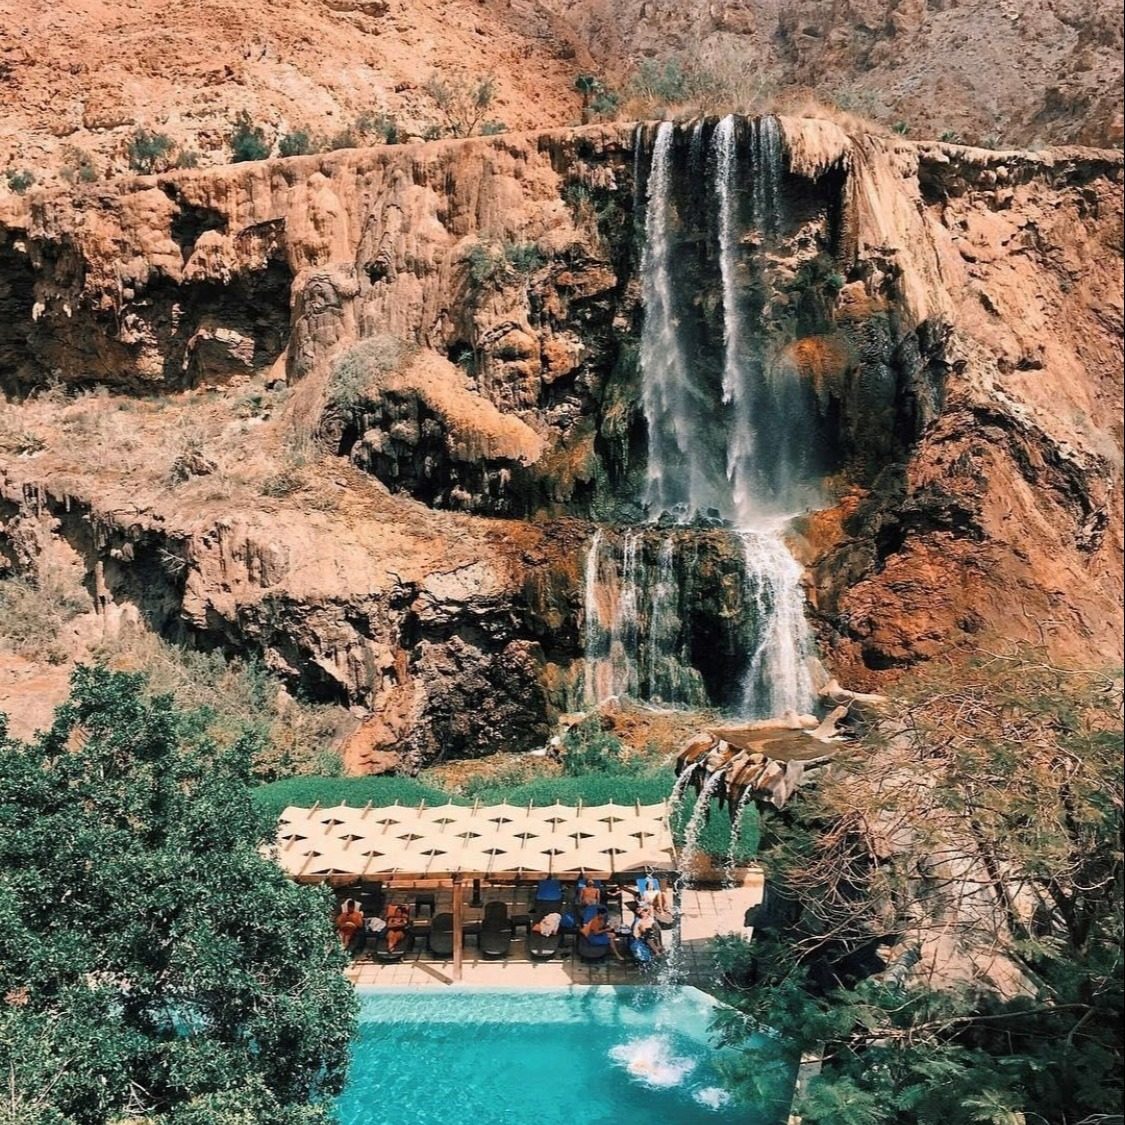 maln-hot-springs-hotel-and-spa-sq